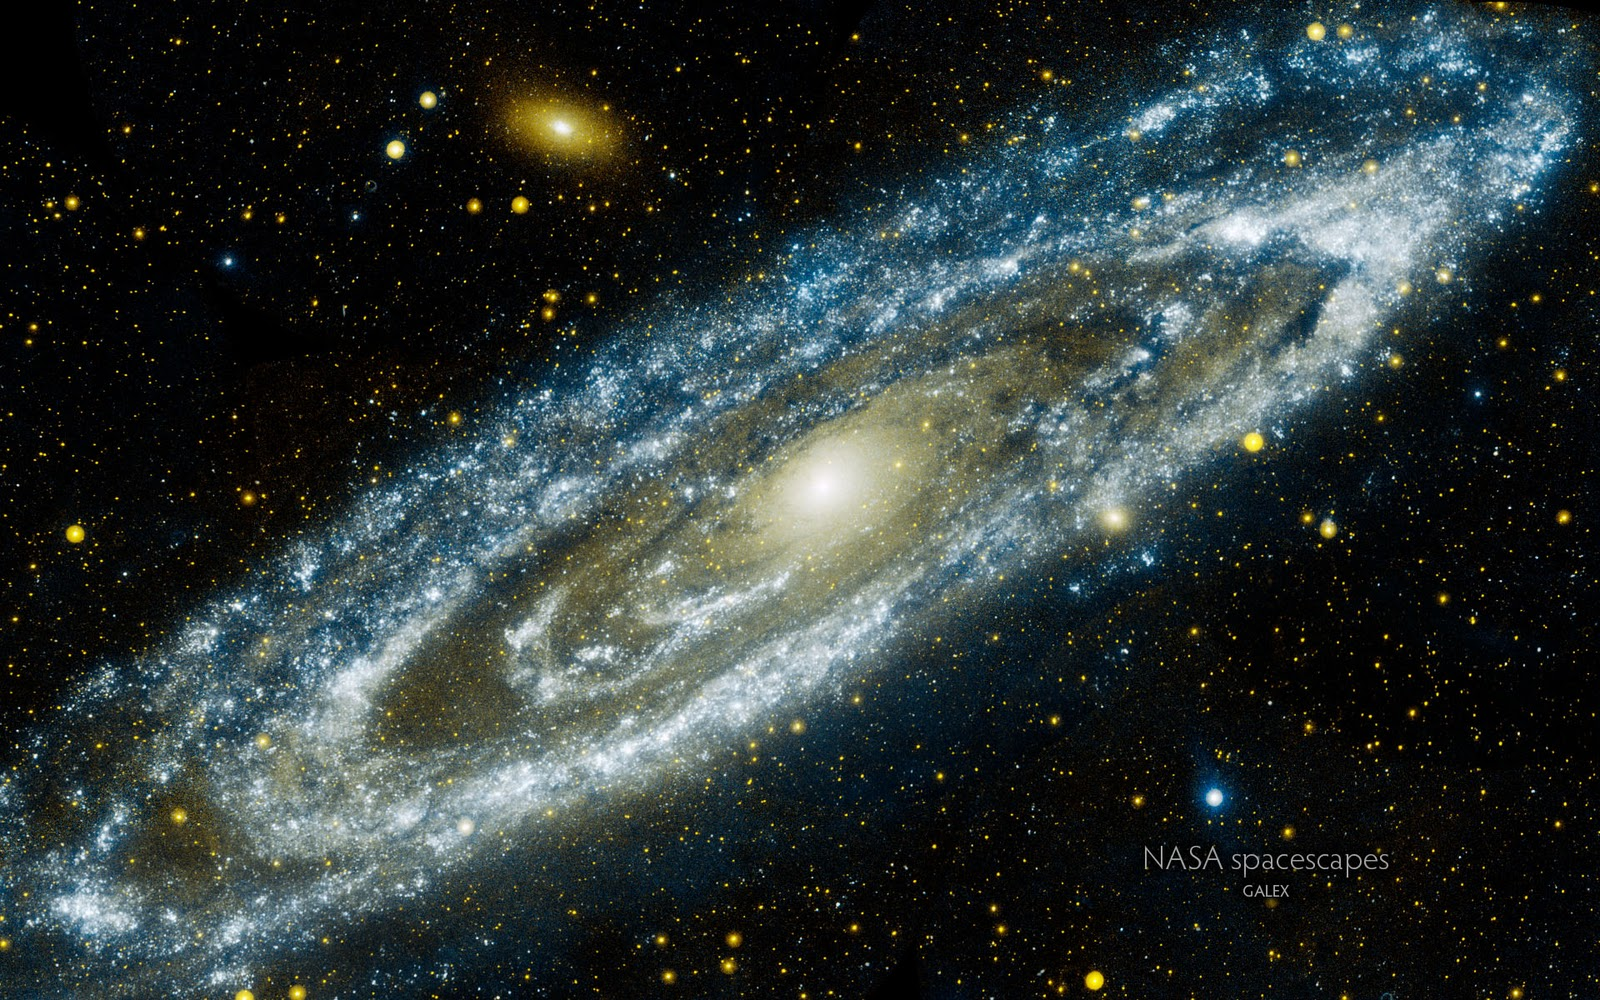 Hd wallpaper universe - Chubbylicious The Universe Hd Wallpapers Chubbylicious The Universe